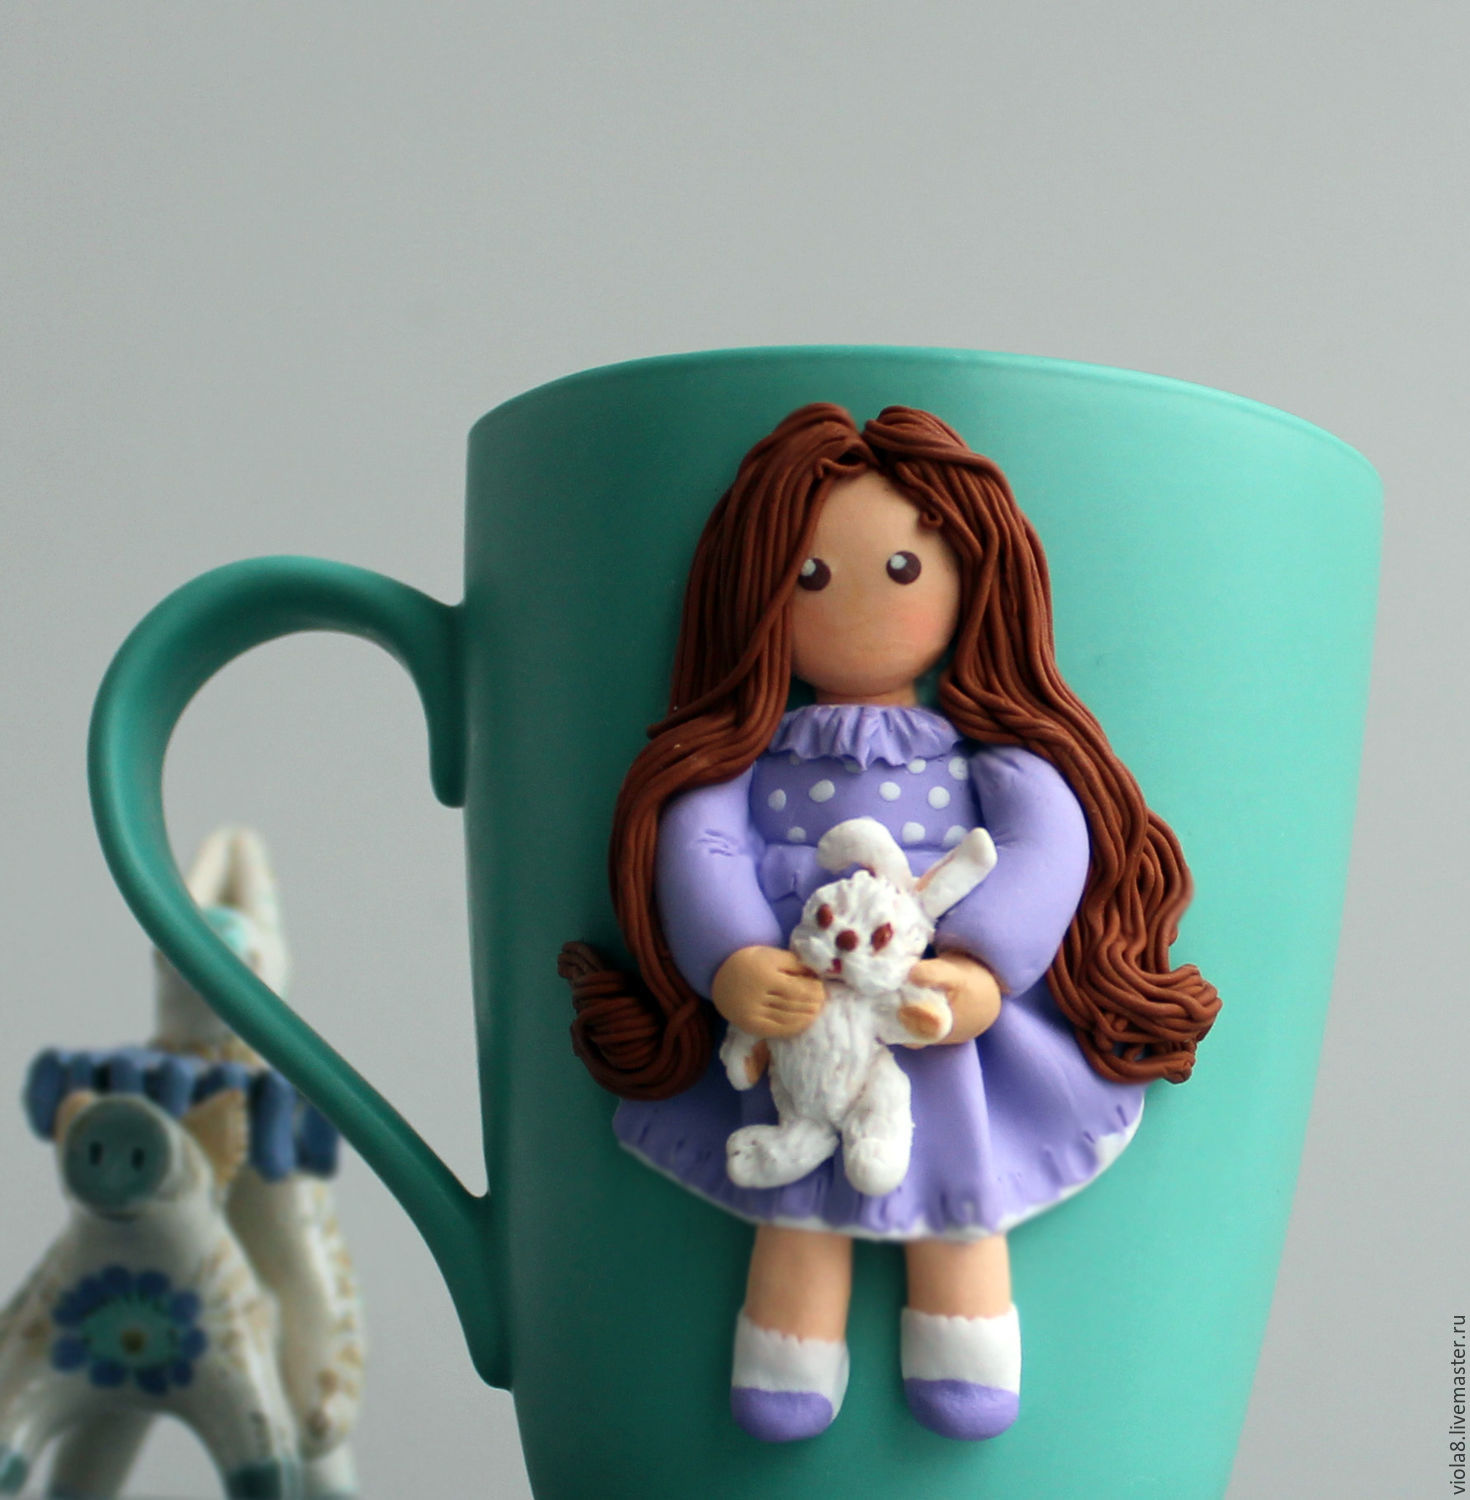 Deco Mug Mug With Decor Decor Mug Girl Bunny Mug With Polymer Clay